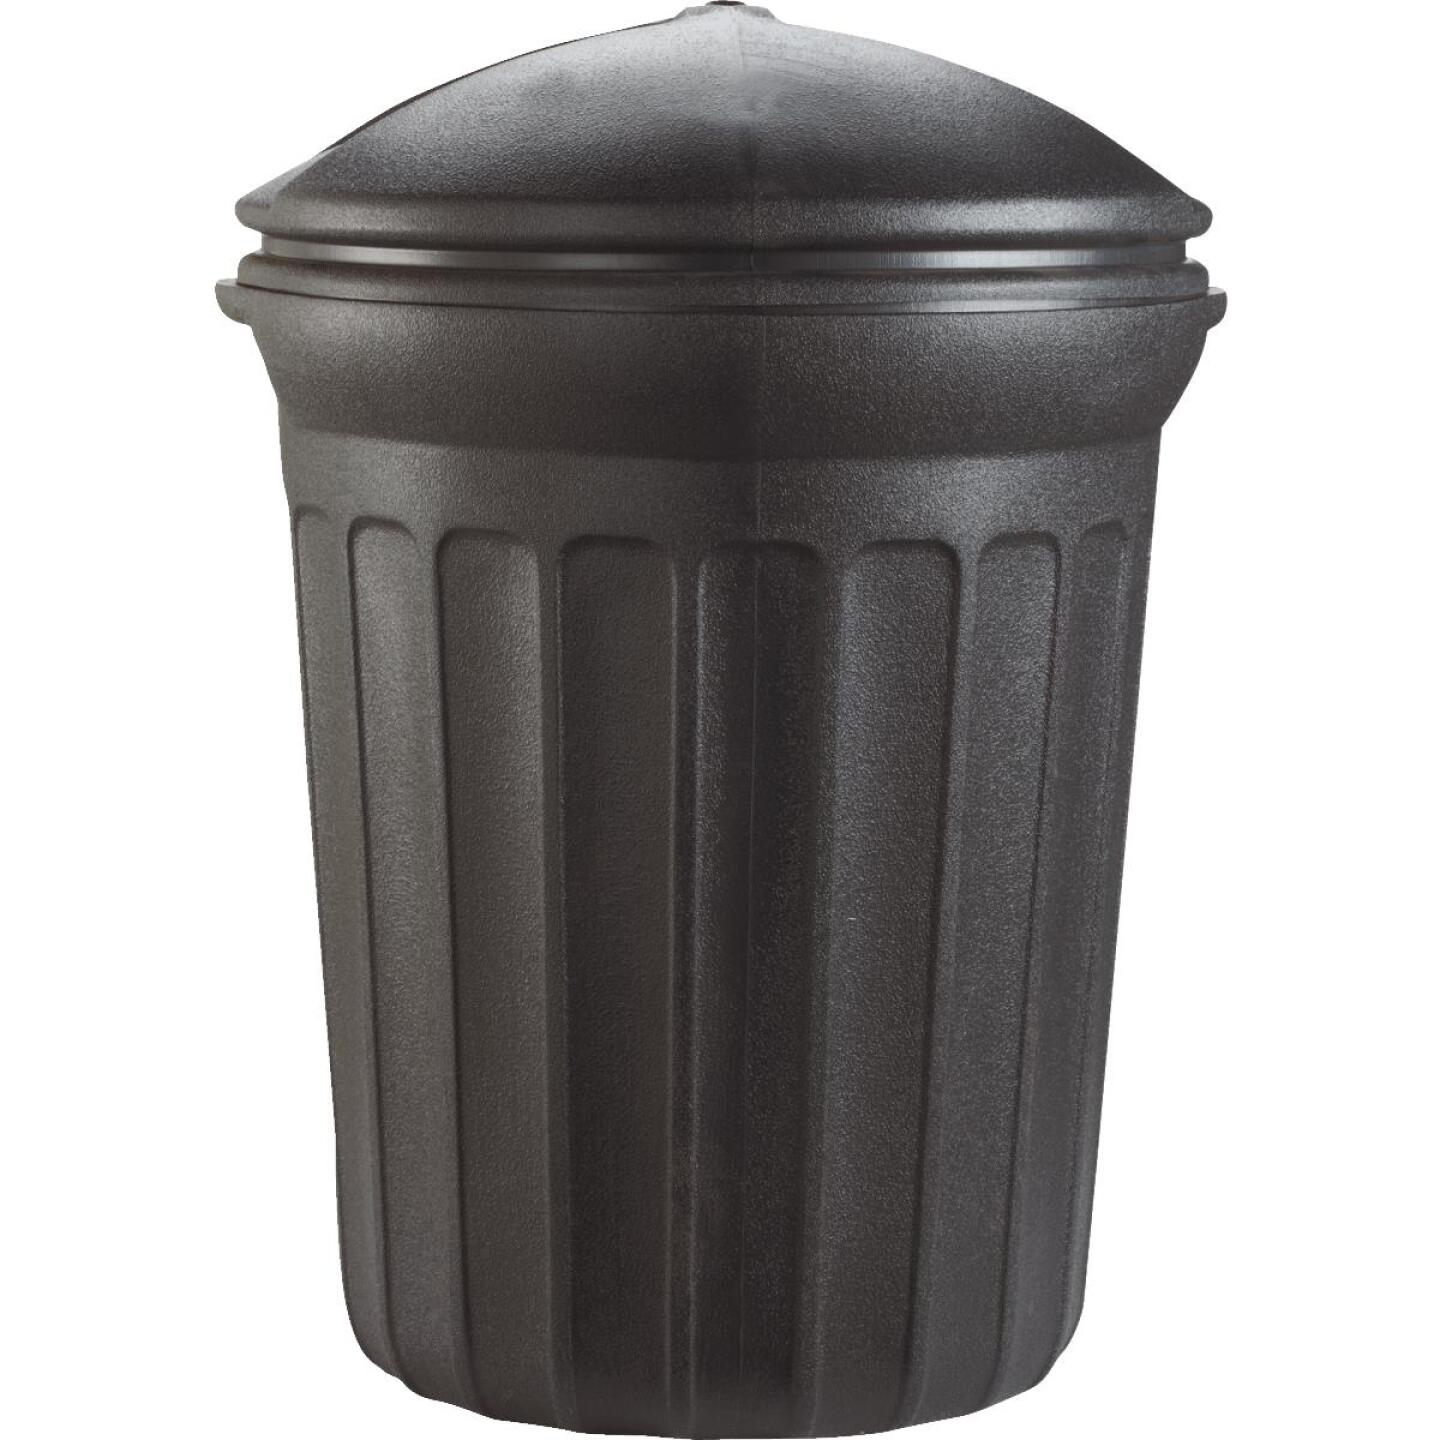 United Solutions Rough & Rugged 32 Gal. Black Trash Can with Lid Image 4